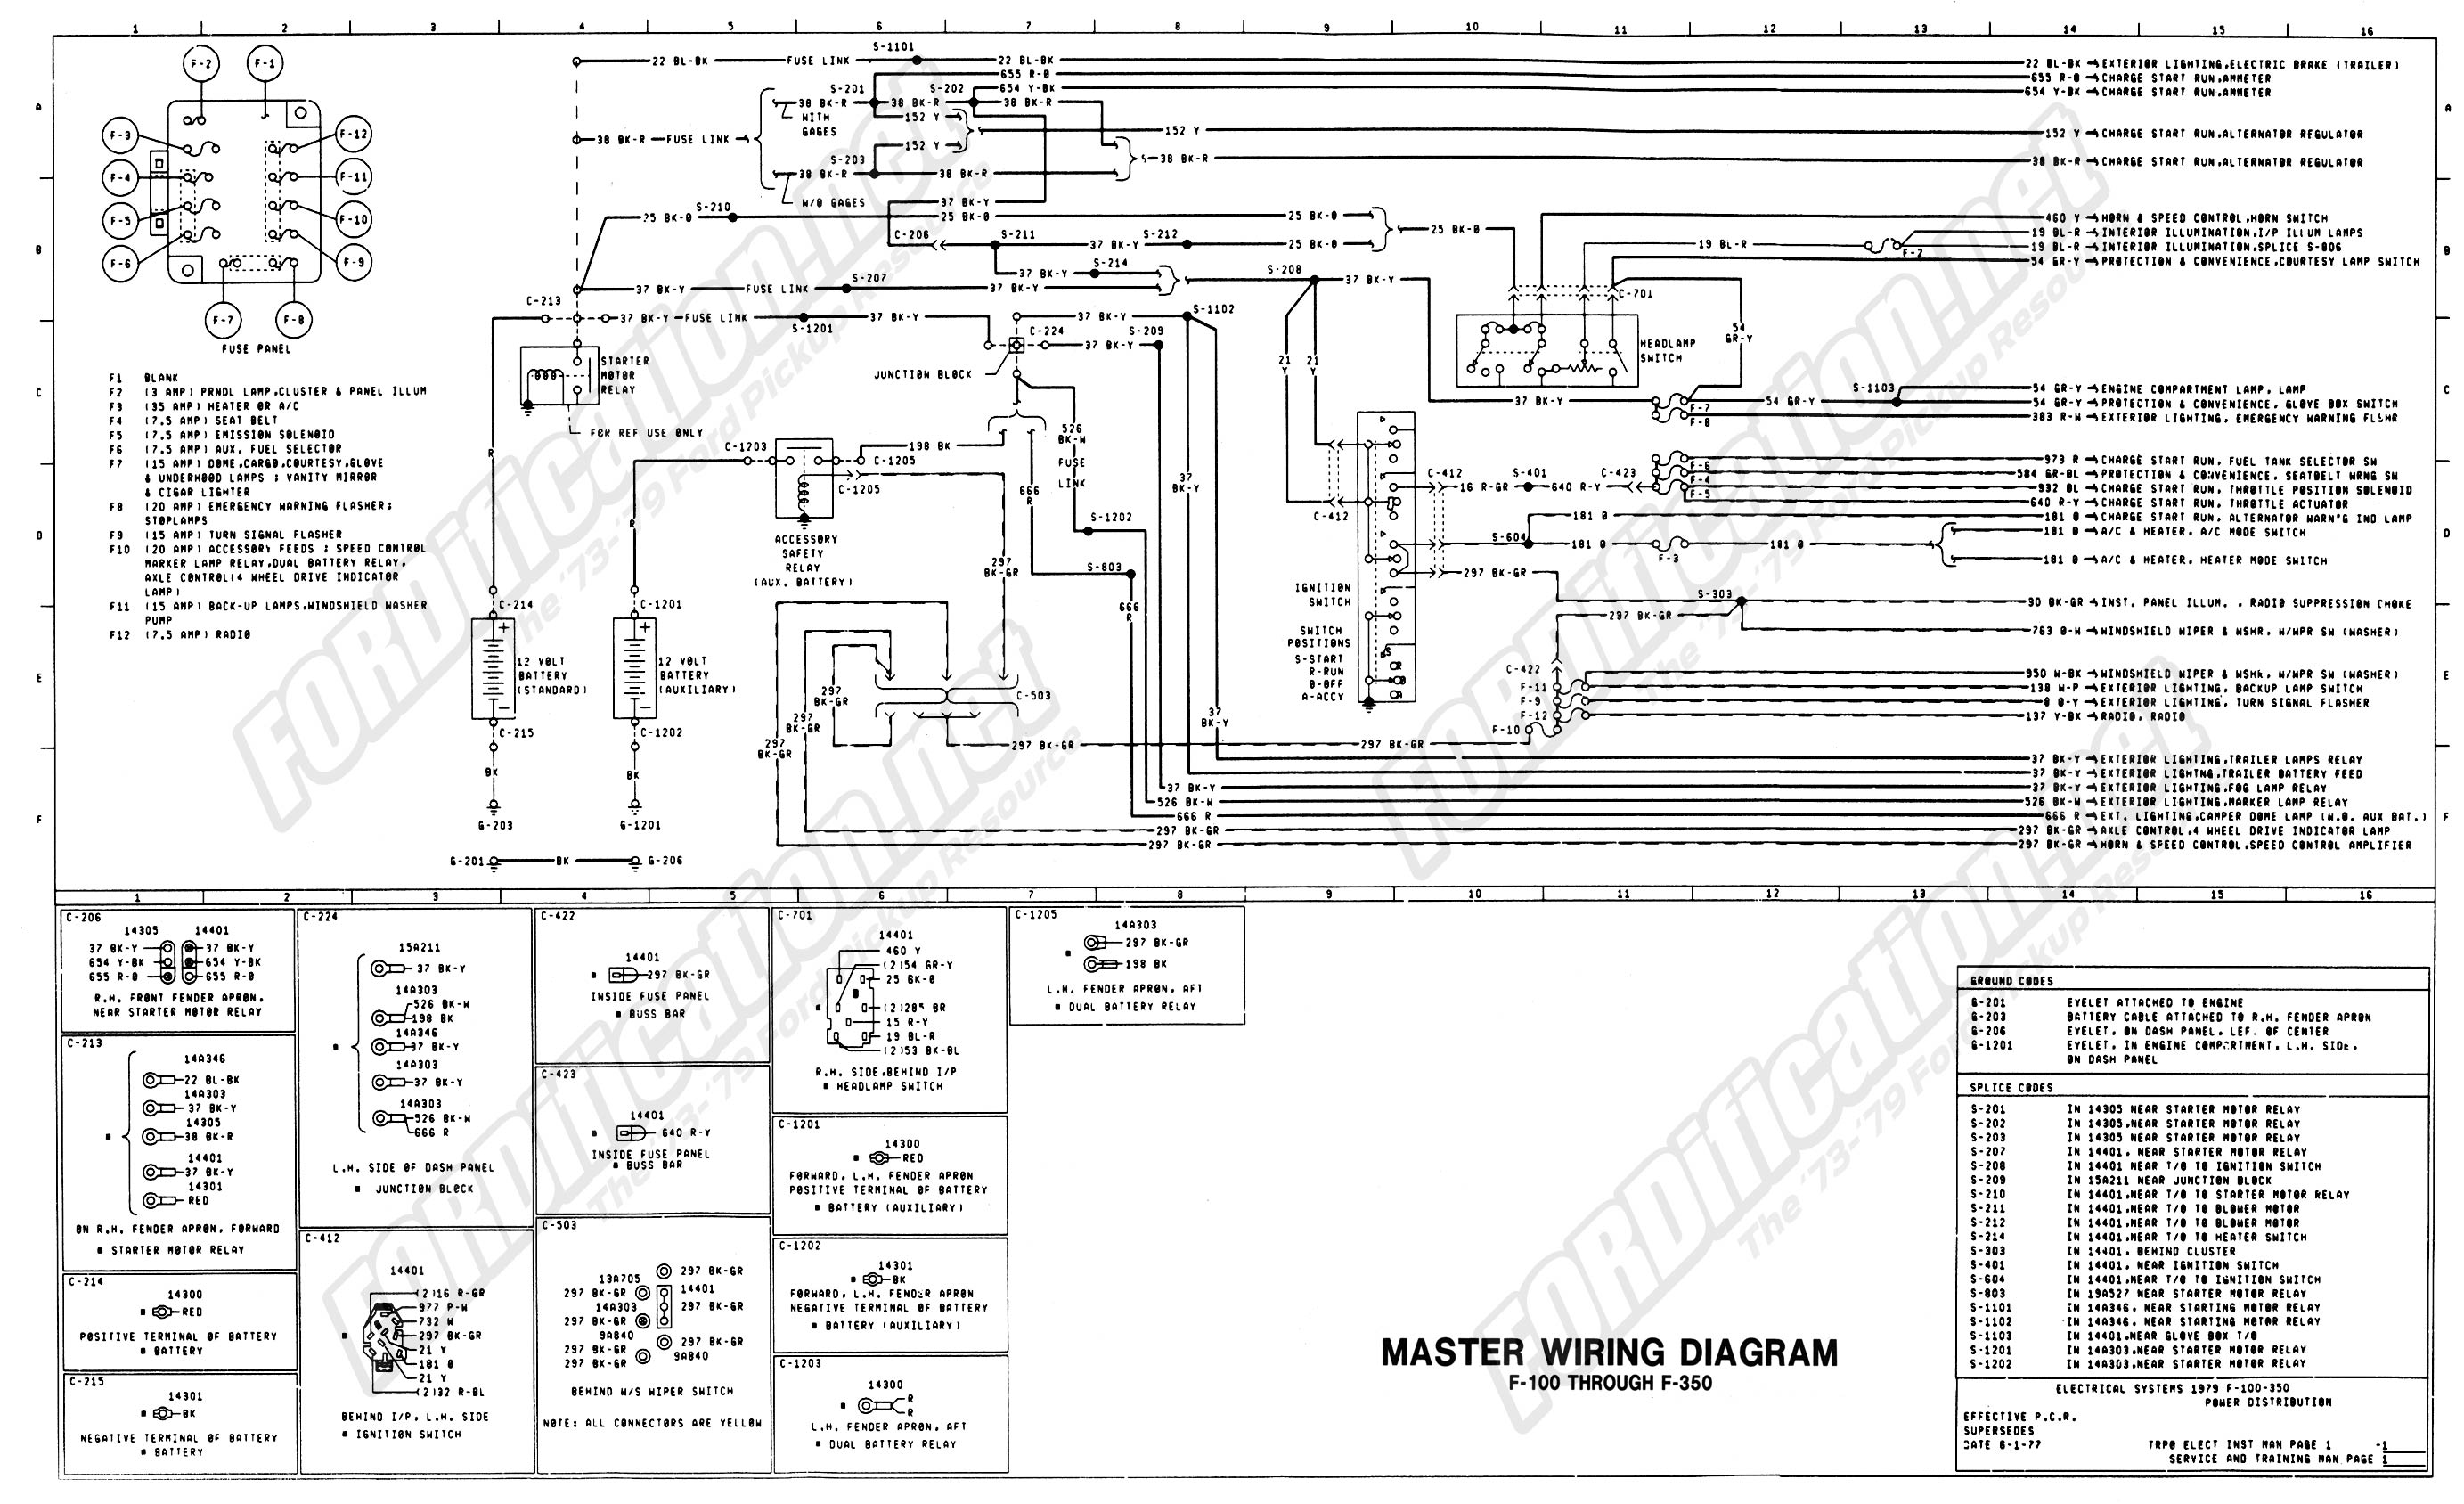 1973 1979 ford truck wiring diagrams schematics fordification net rh fordification net 79 Ford Tilt Ford F-250 Wiring Diagram